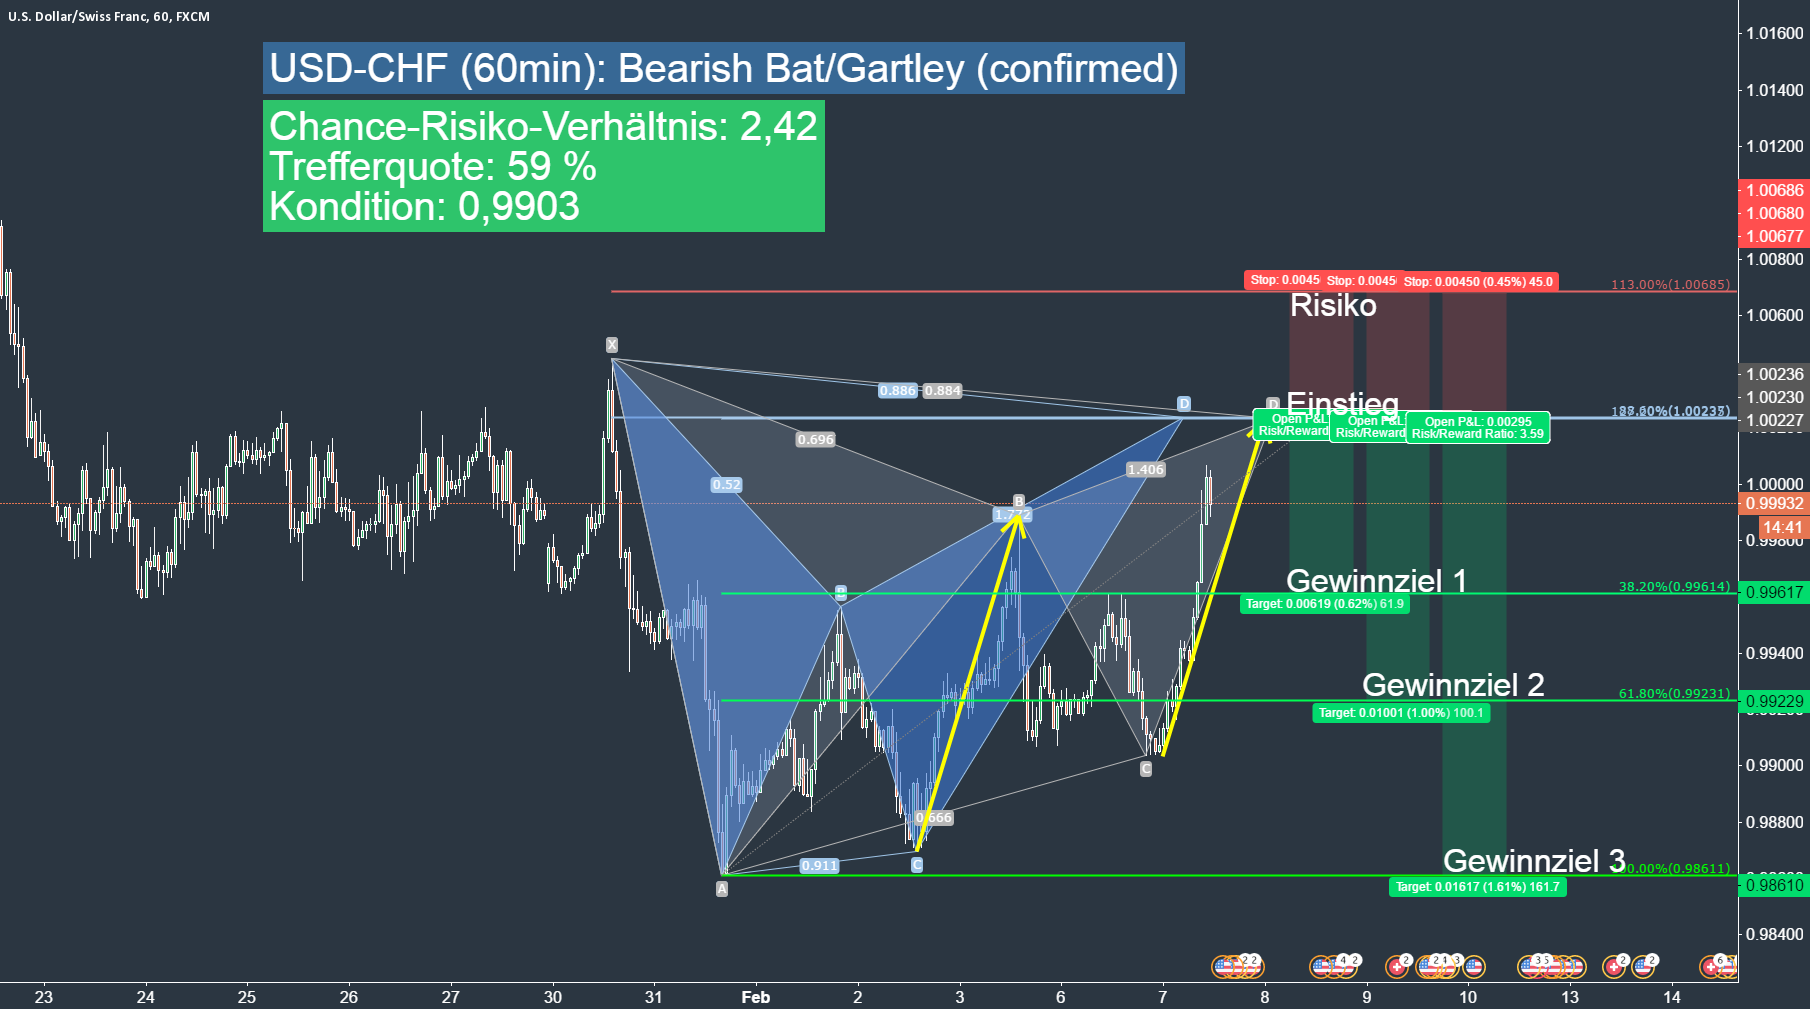 USD-CHF (60min): Triple Play Bat-Gartley-ABCD (confirmed)